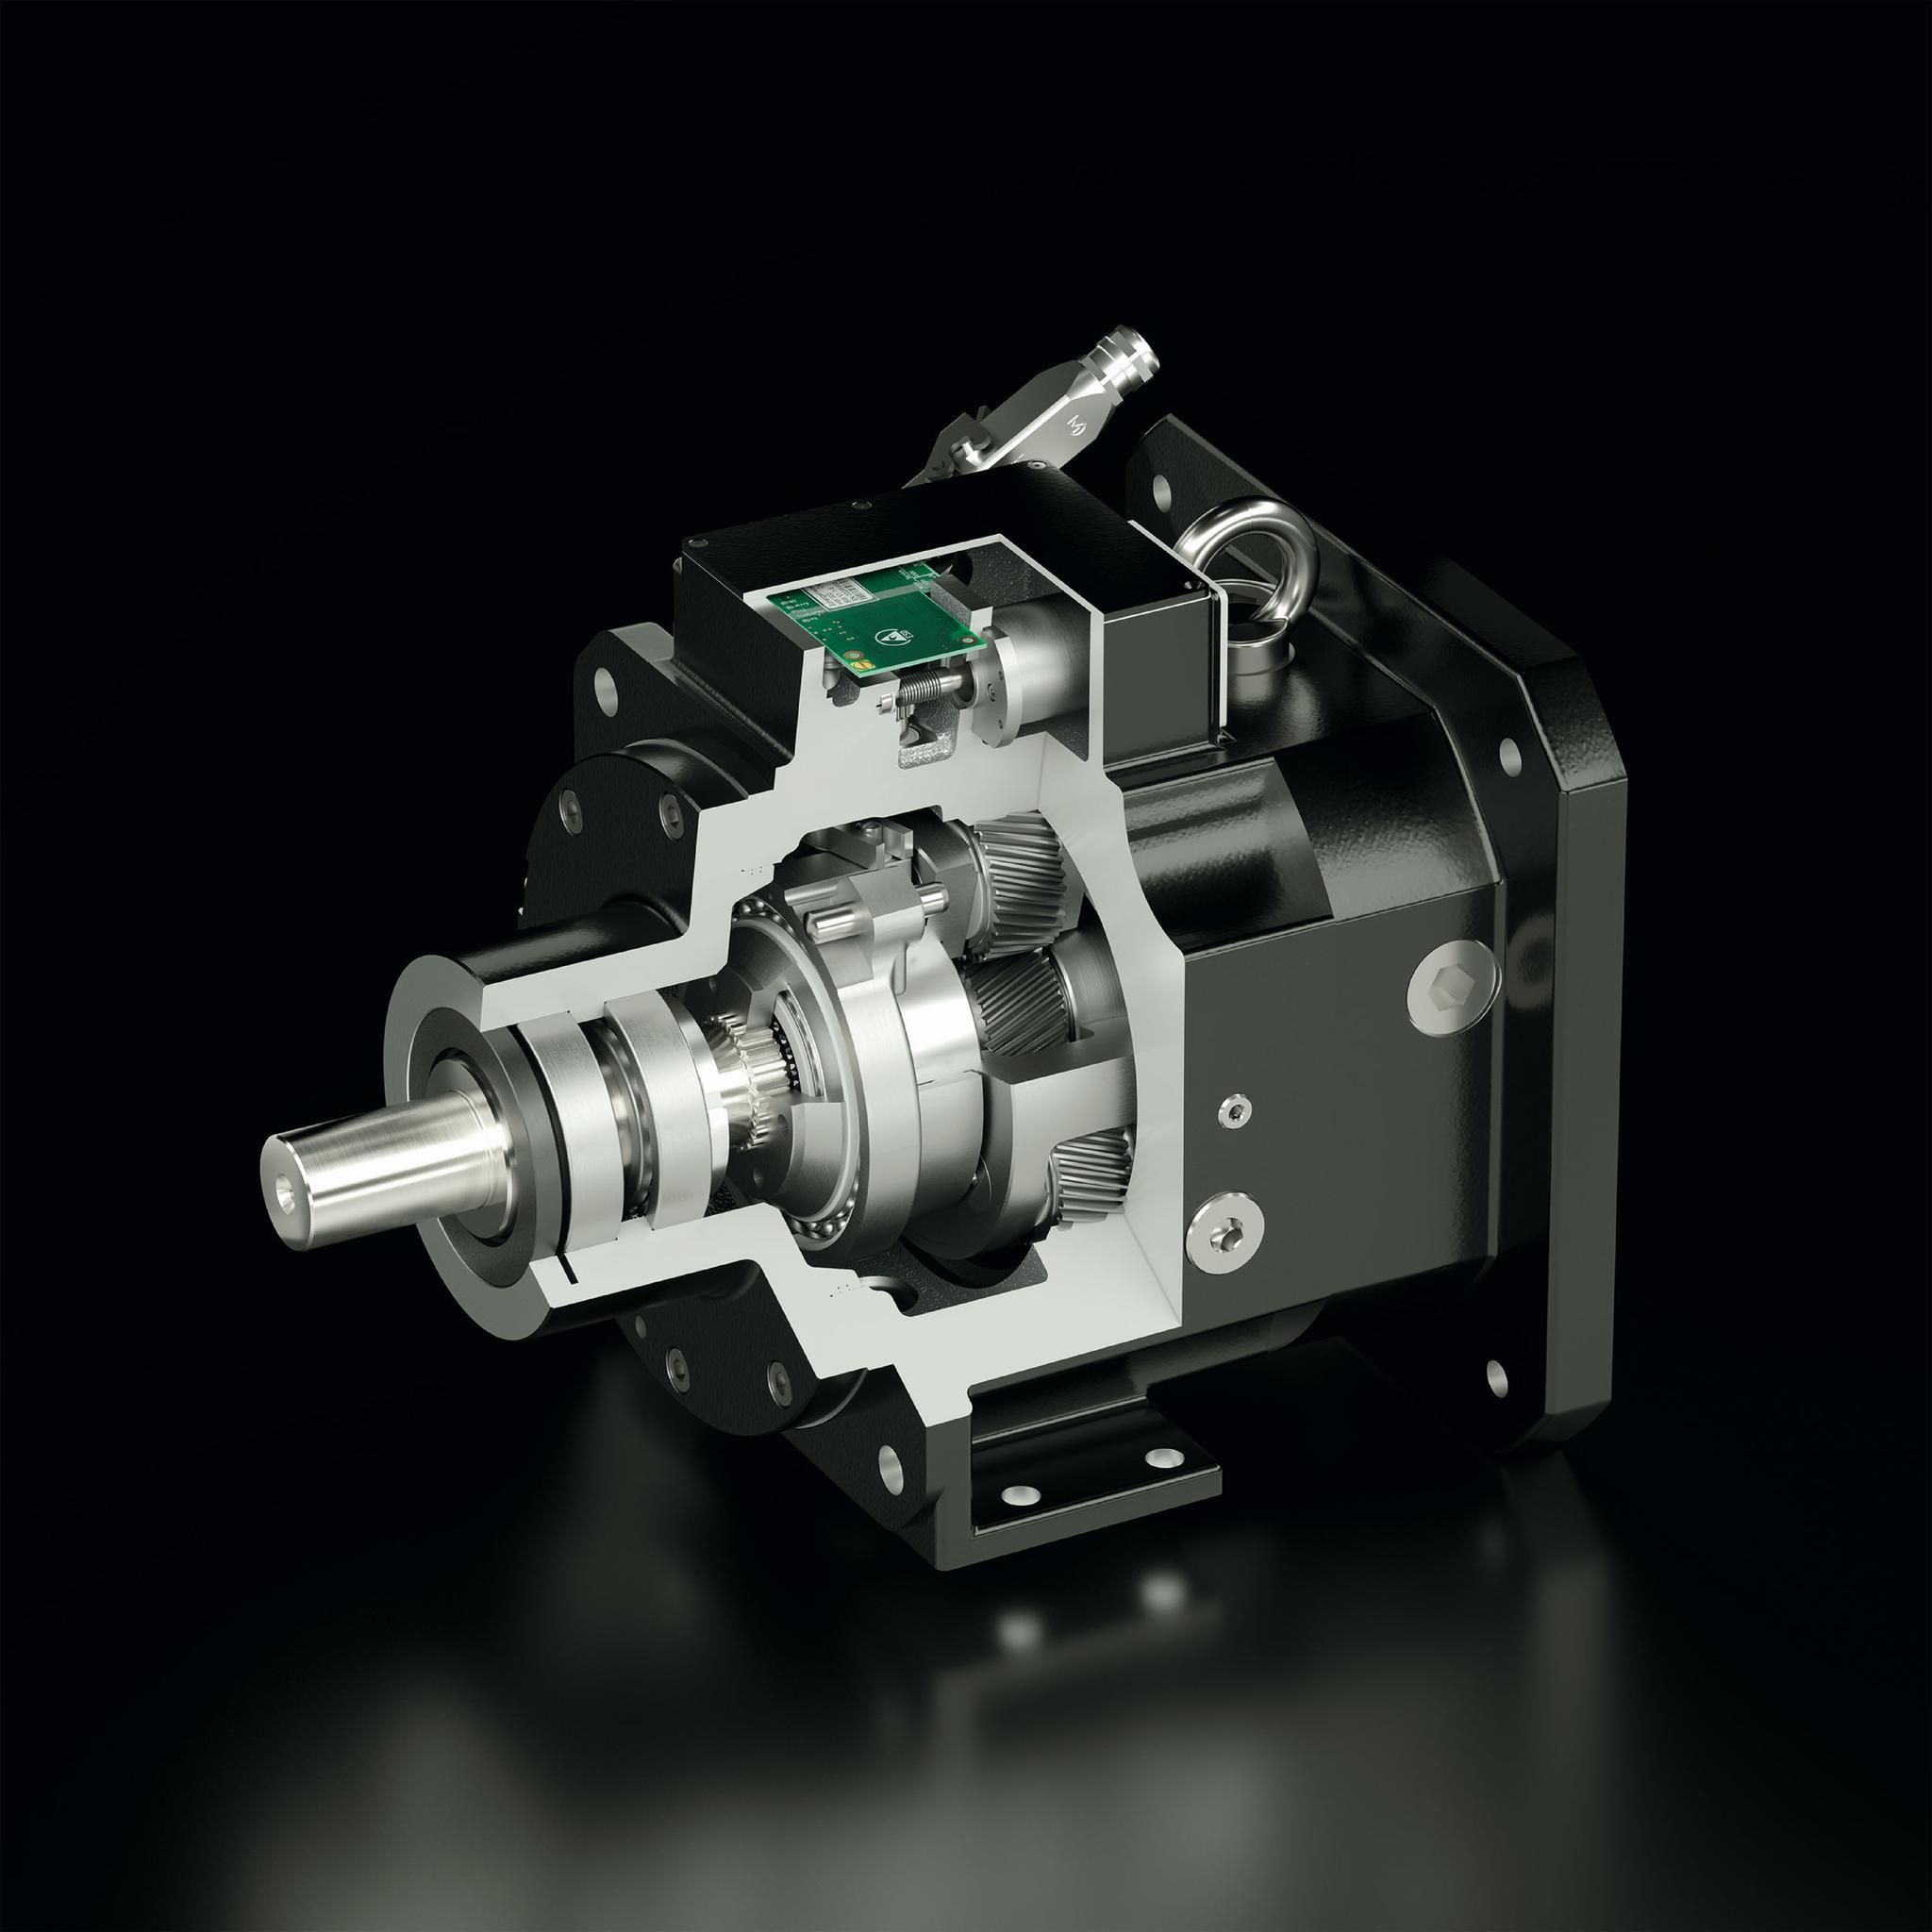 STOBER's PS Two-Speed Gearbox with SensorShift for smooth power transmission, reduced wear and improved cost-efficiency